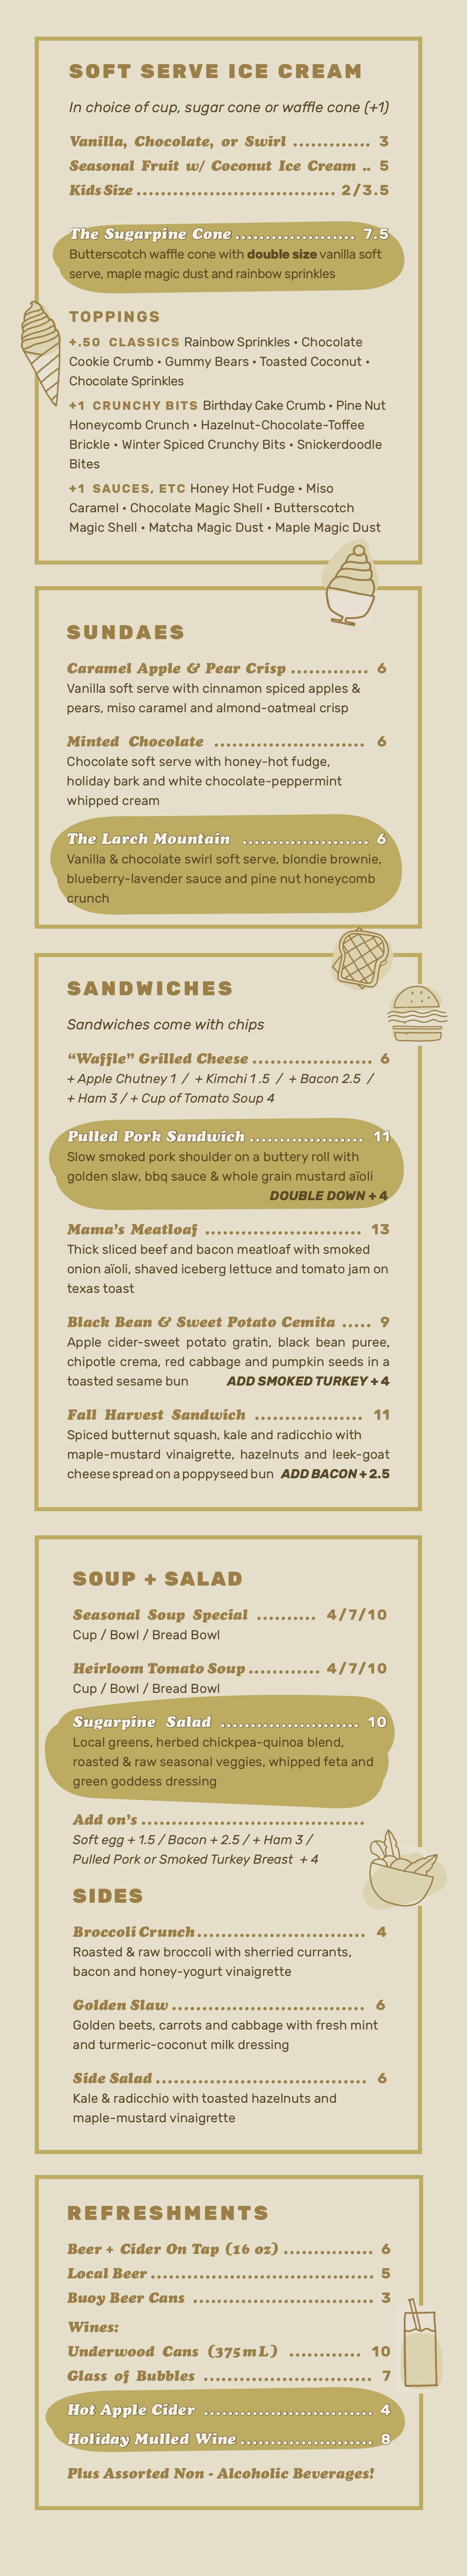 Menu Vertical 11.28.18